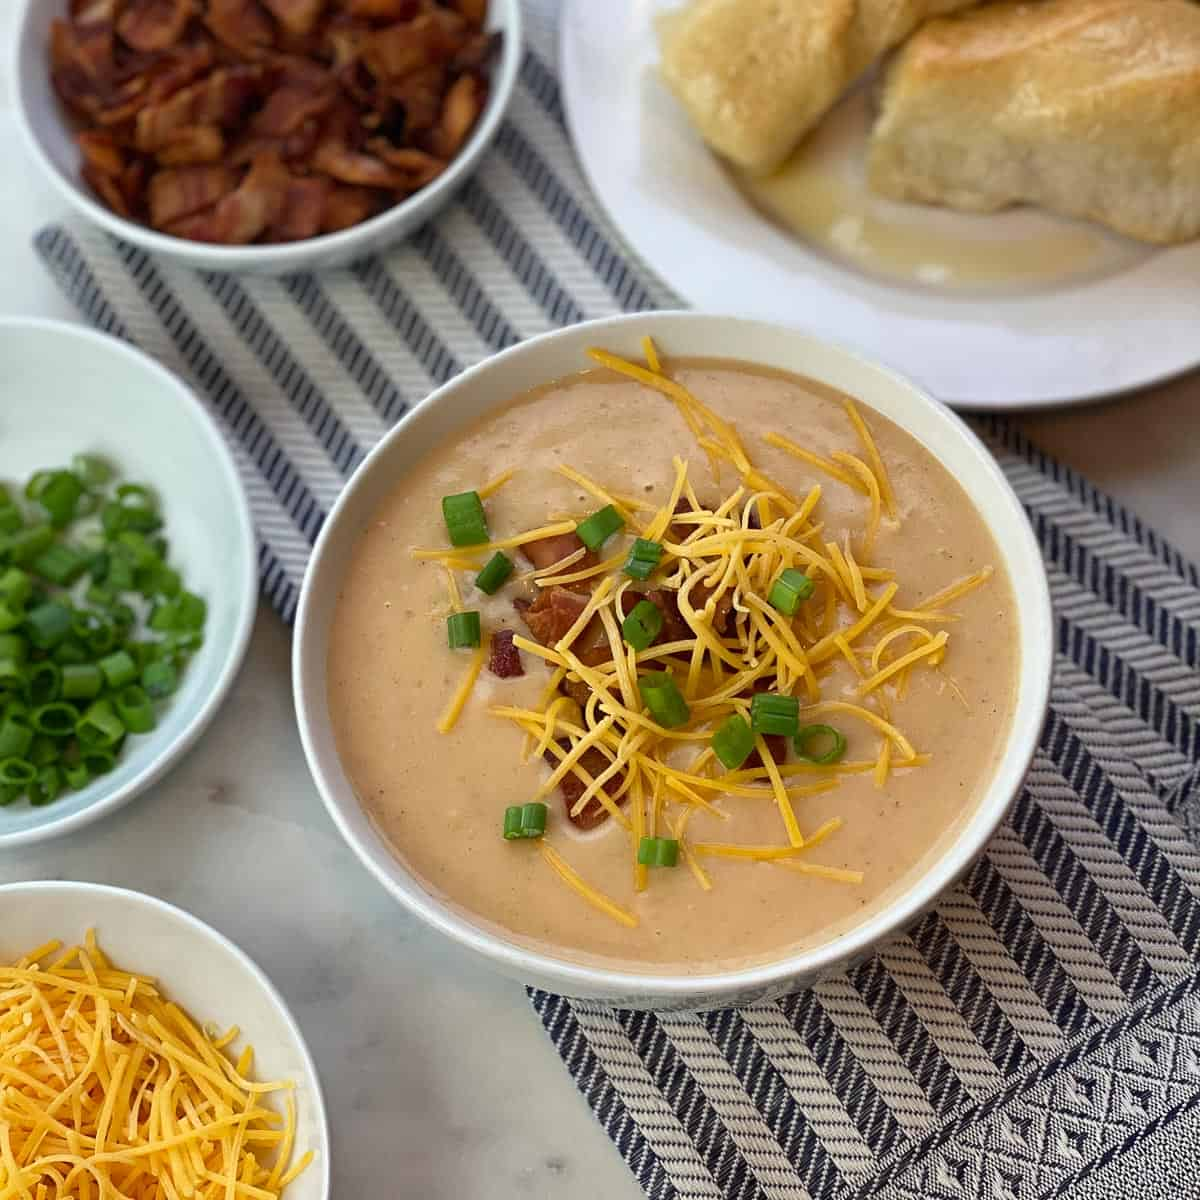 Image showing Potato Soup with toppings of bacon bits, Cheddar cheese, and green onions.